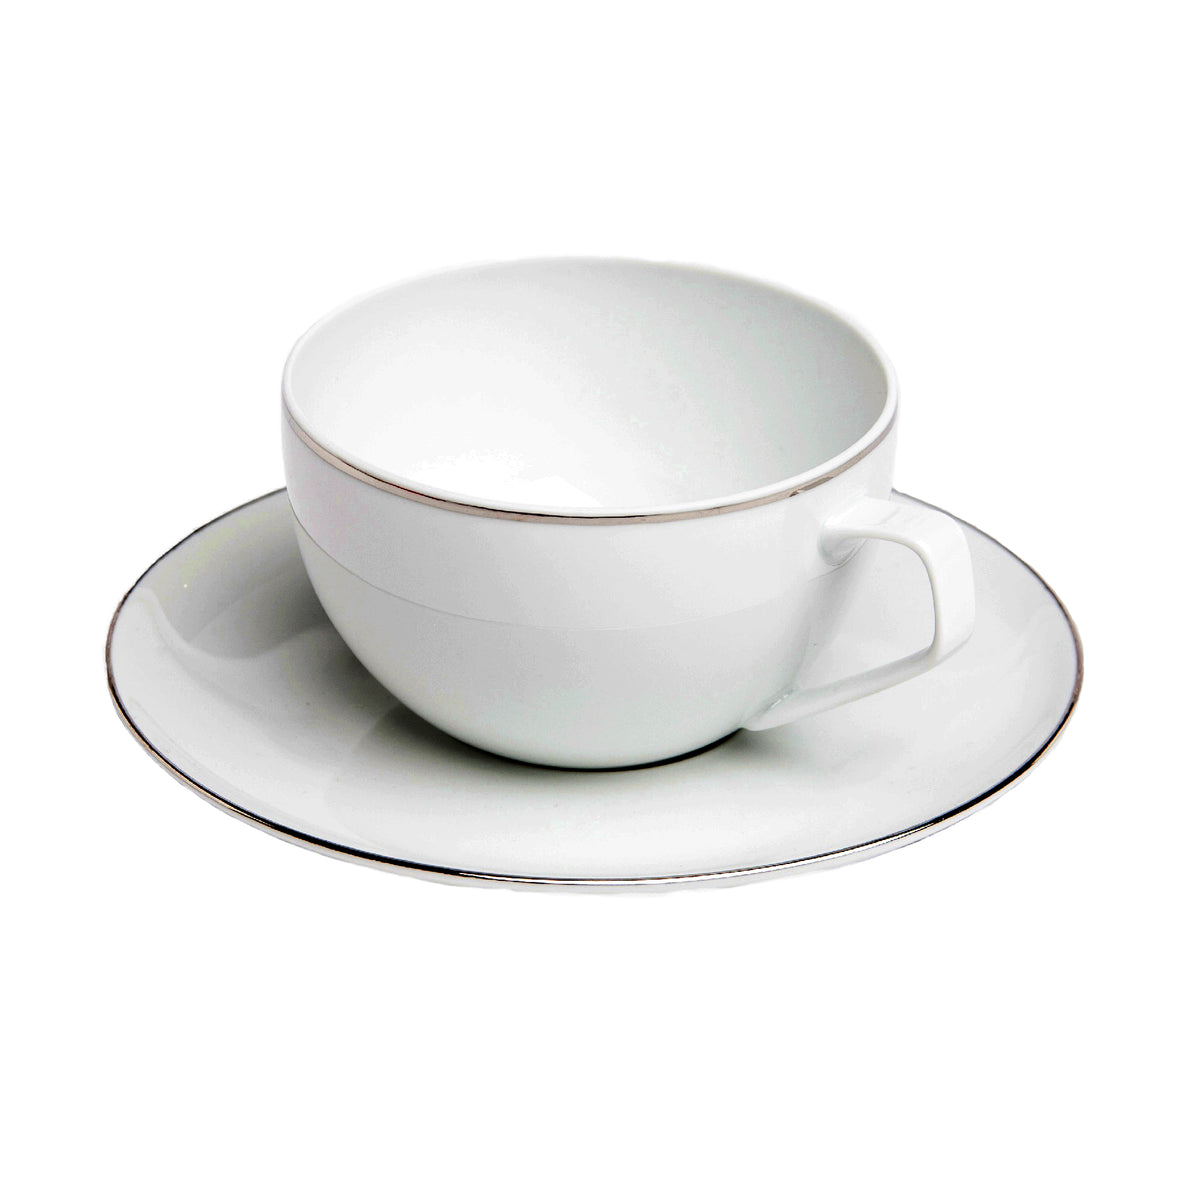 Platinum Filet Combi Porcelain Cup and Saucer